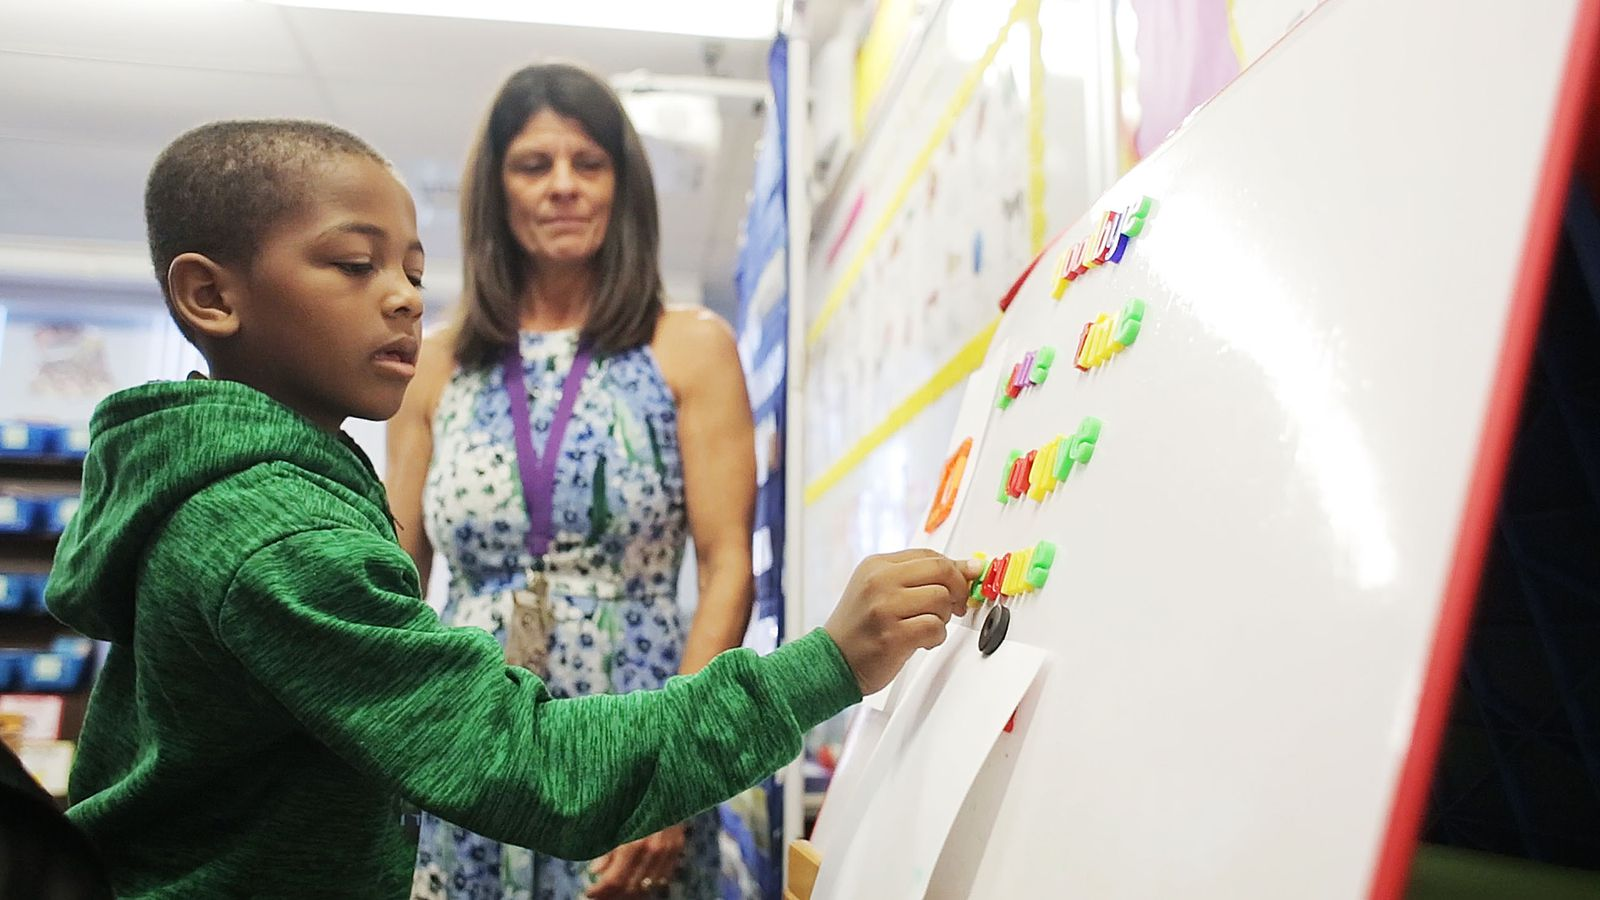 Specialist Patti Gonzales, who teaches reading lessons in small groups, works with Markus Barron at Booker T. Washington Elementary School in Tampa on Feb. 6.  [OCTAVIO JONES   |   Times]